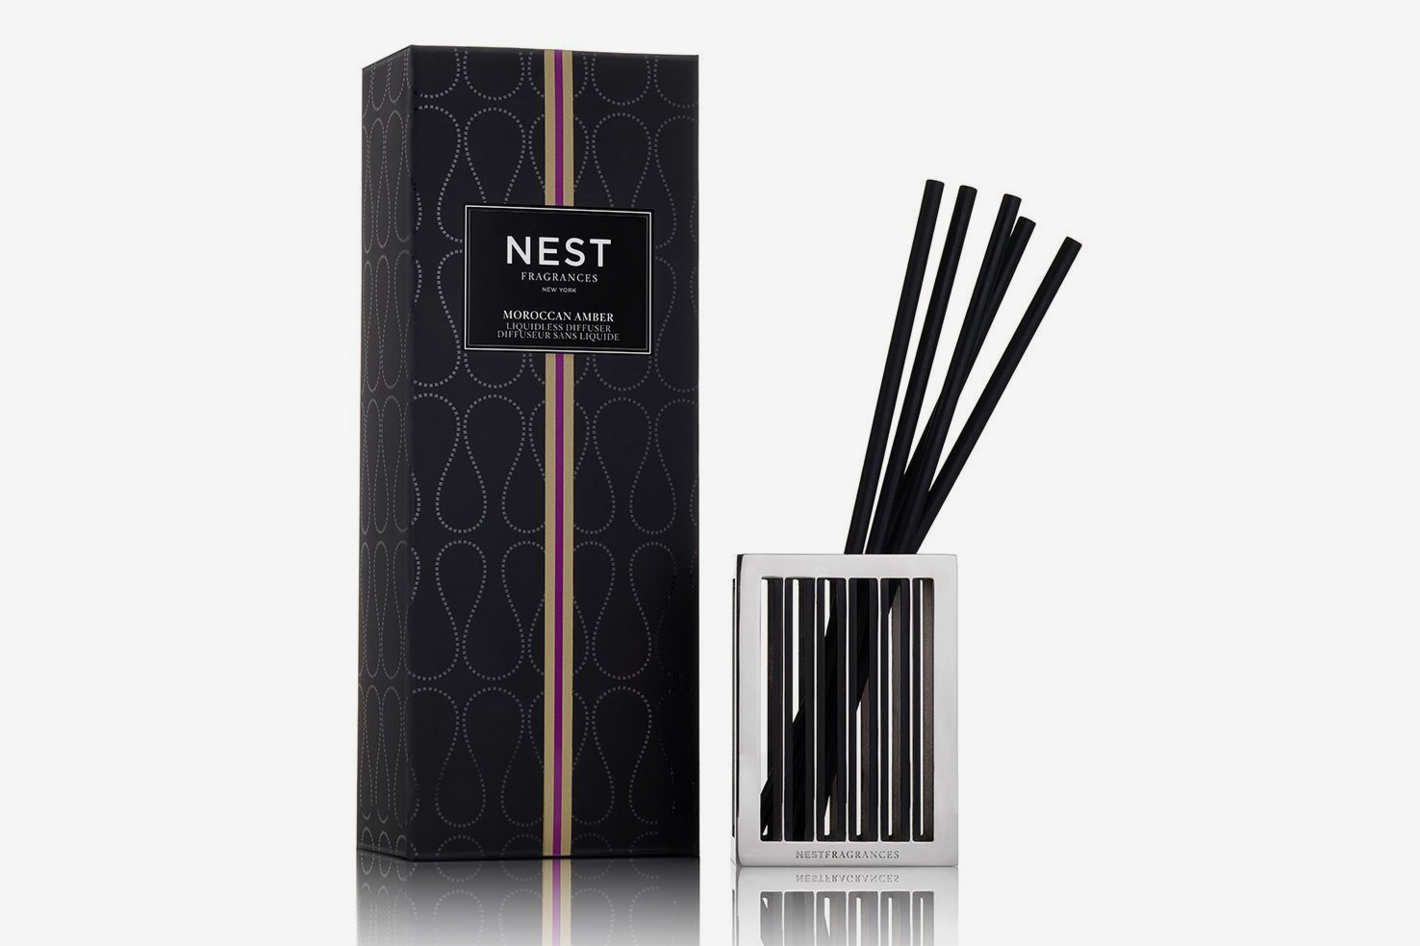 Nest Fragrances Liquidless Diffuser — Moroccan Amber